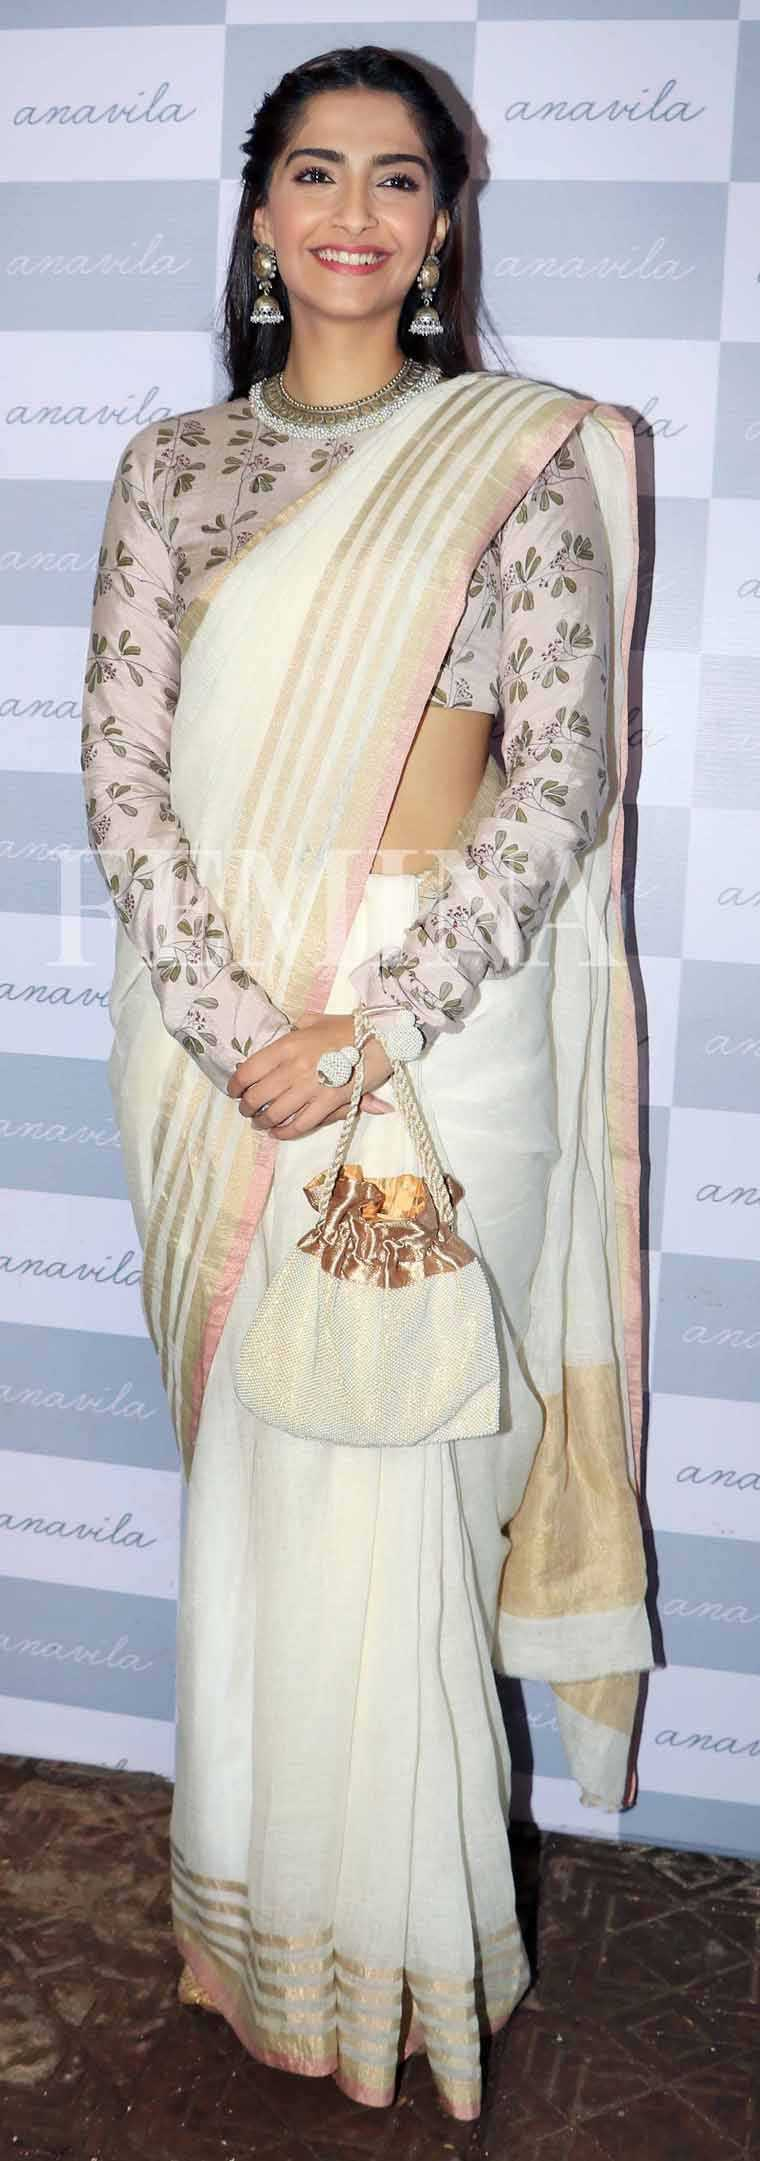 SONAM KAPOOR The Neerja star proved that a retro-style full-sleeved blouse can be just as adorable now as it was when your grandmother wore it with this Anavila number.